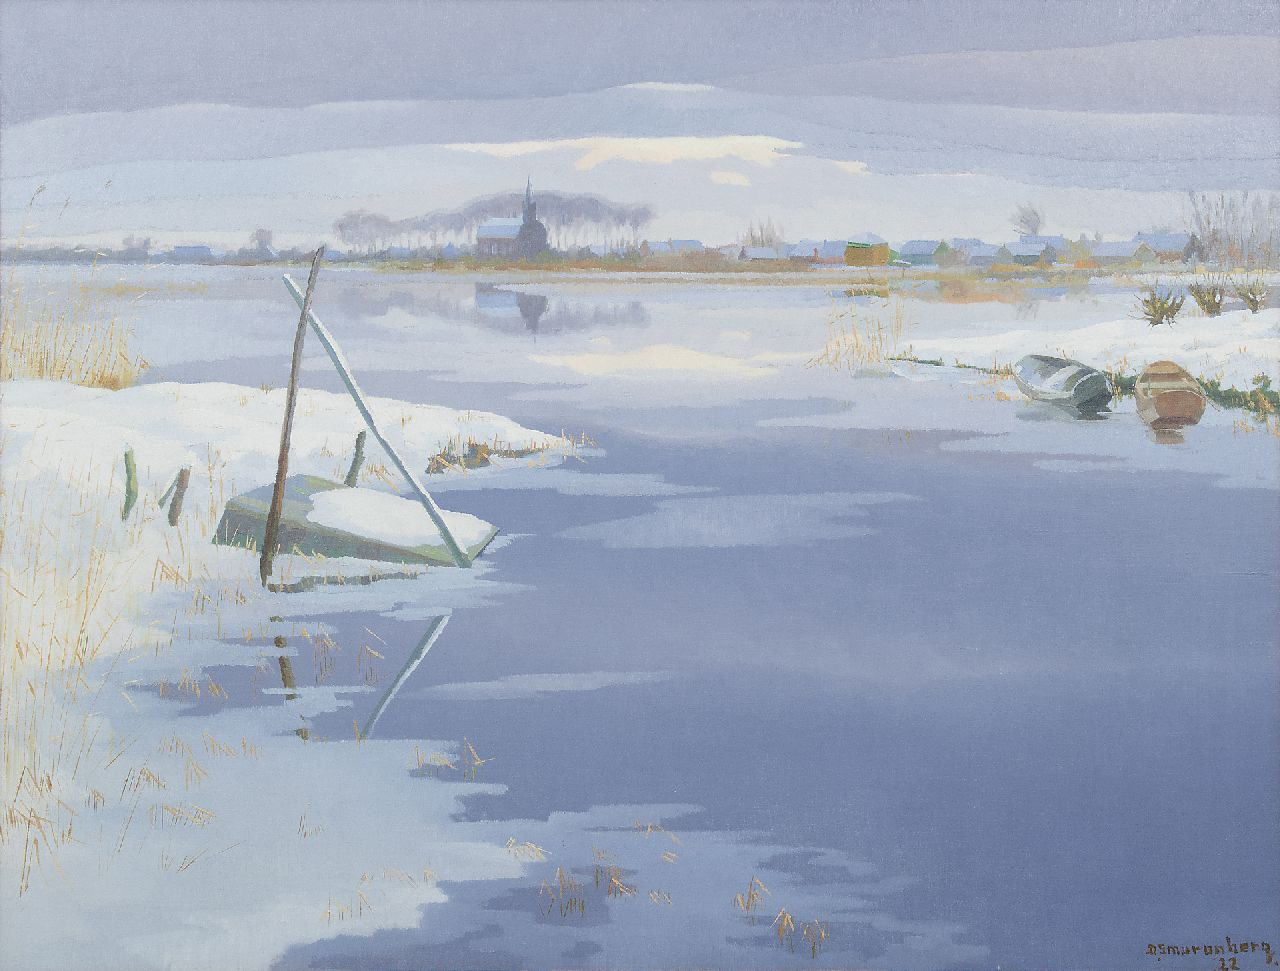 Smorenberg D.  | Dirk Smorenberg, View of the Vuntusplas in winter, oil on canvas 73.0 x 95.2 cm, signed l.r. and dated '22